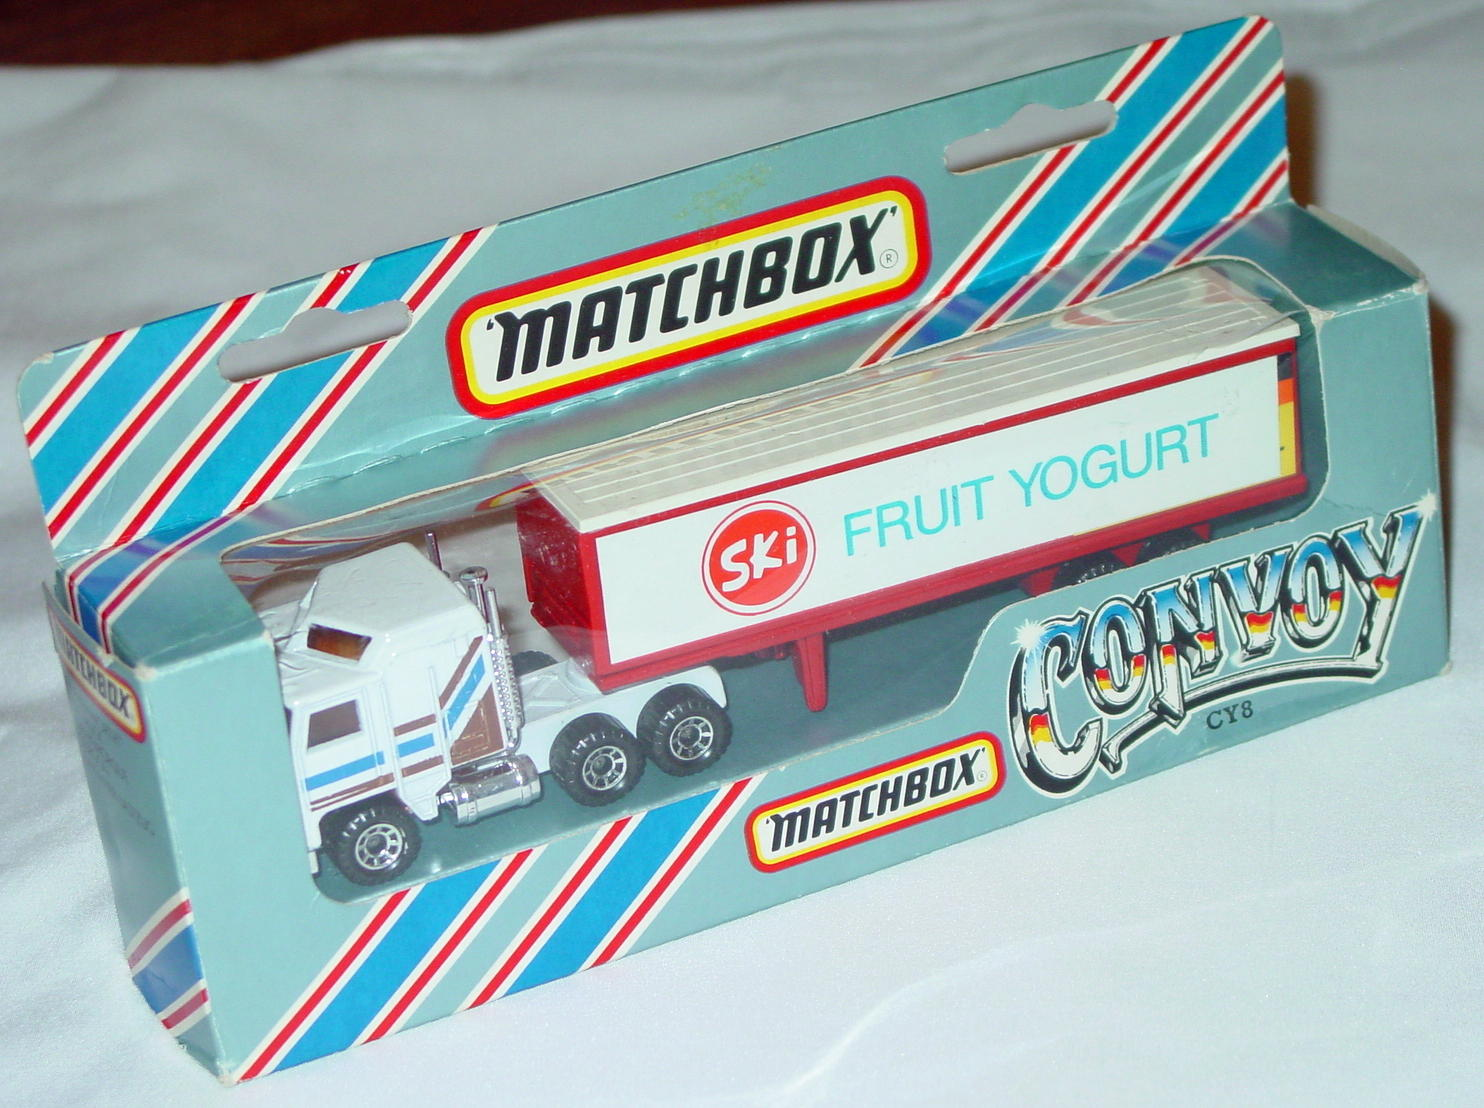 Convoy 08 A 8 - Kenworth White 45-crown Cab brown and blue SKI FRUIT YOGURT